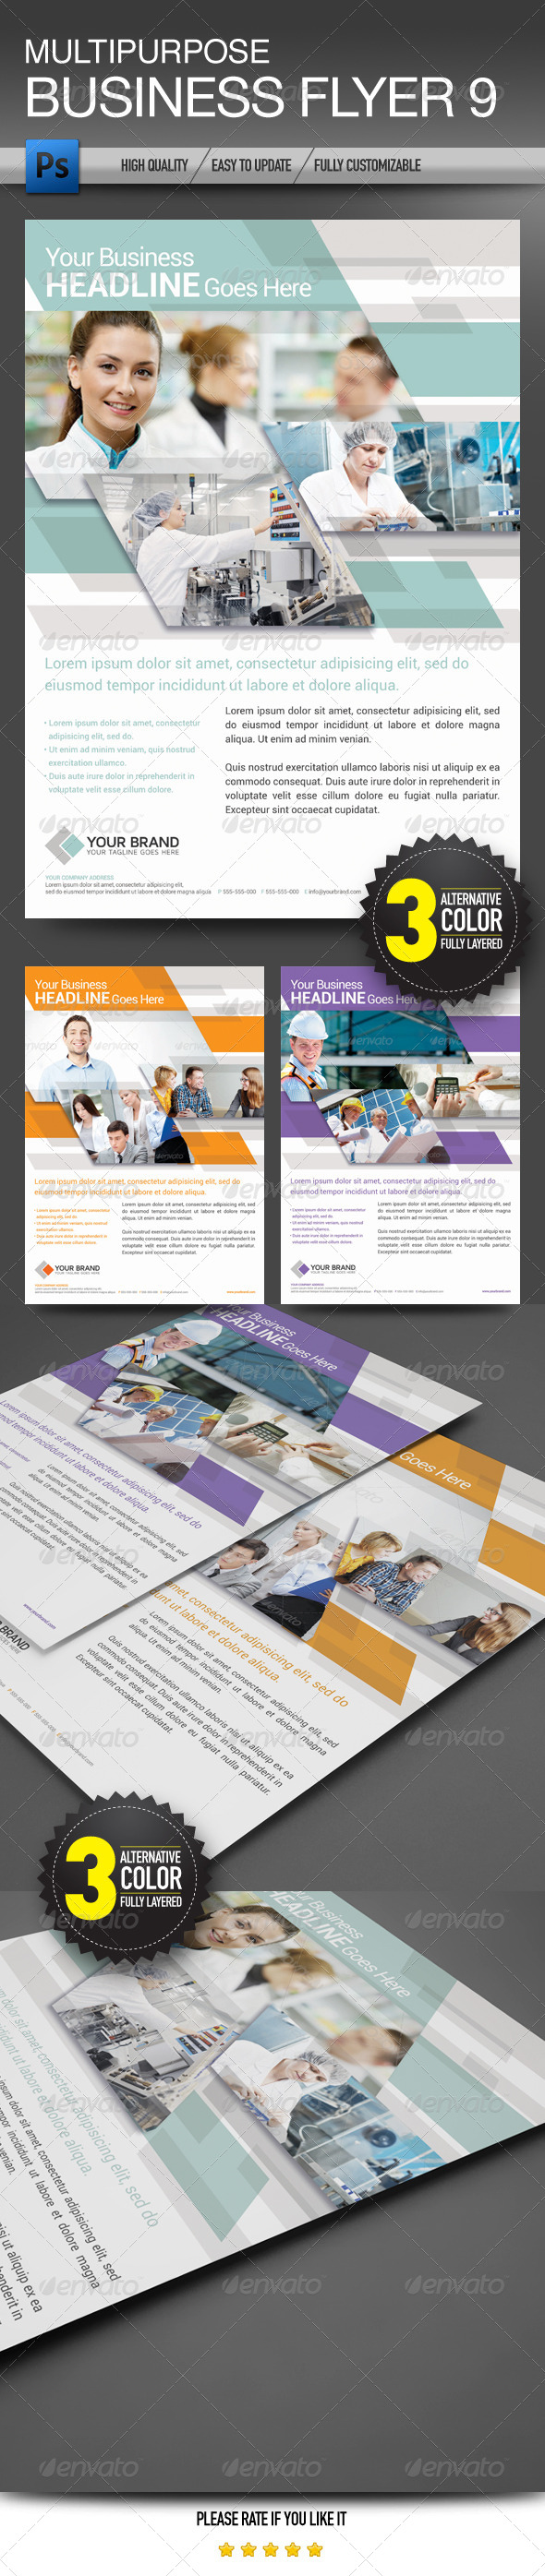 Multipurpose Business Flyer 9